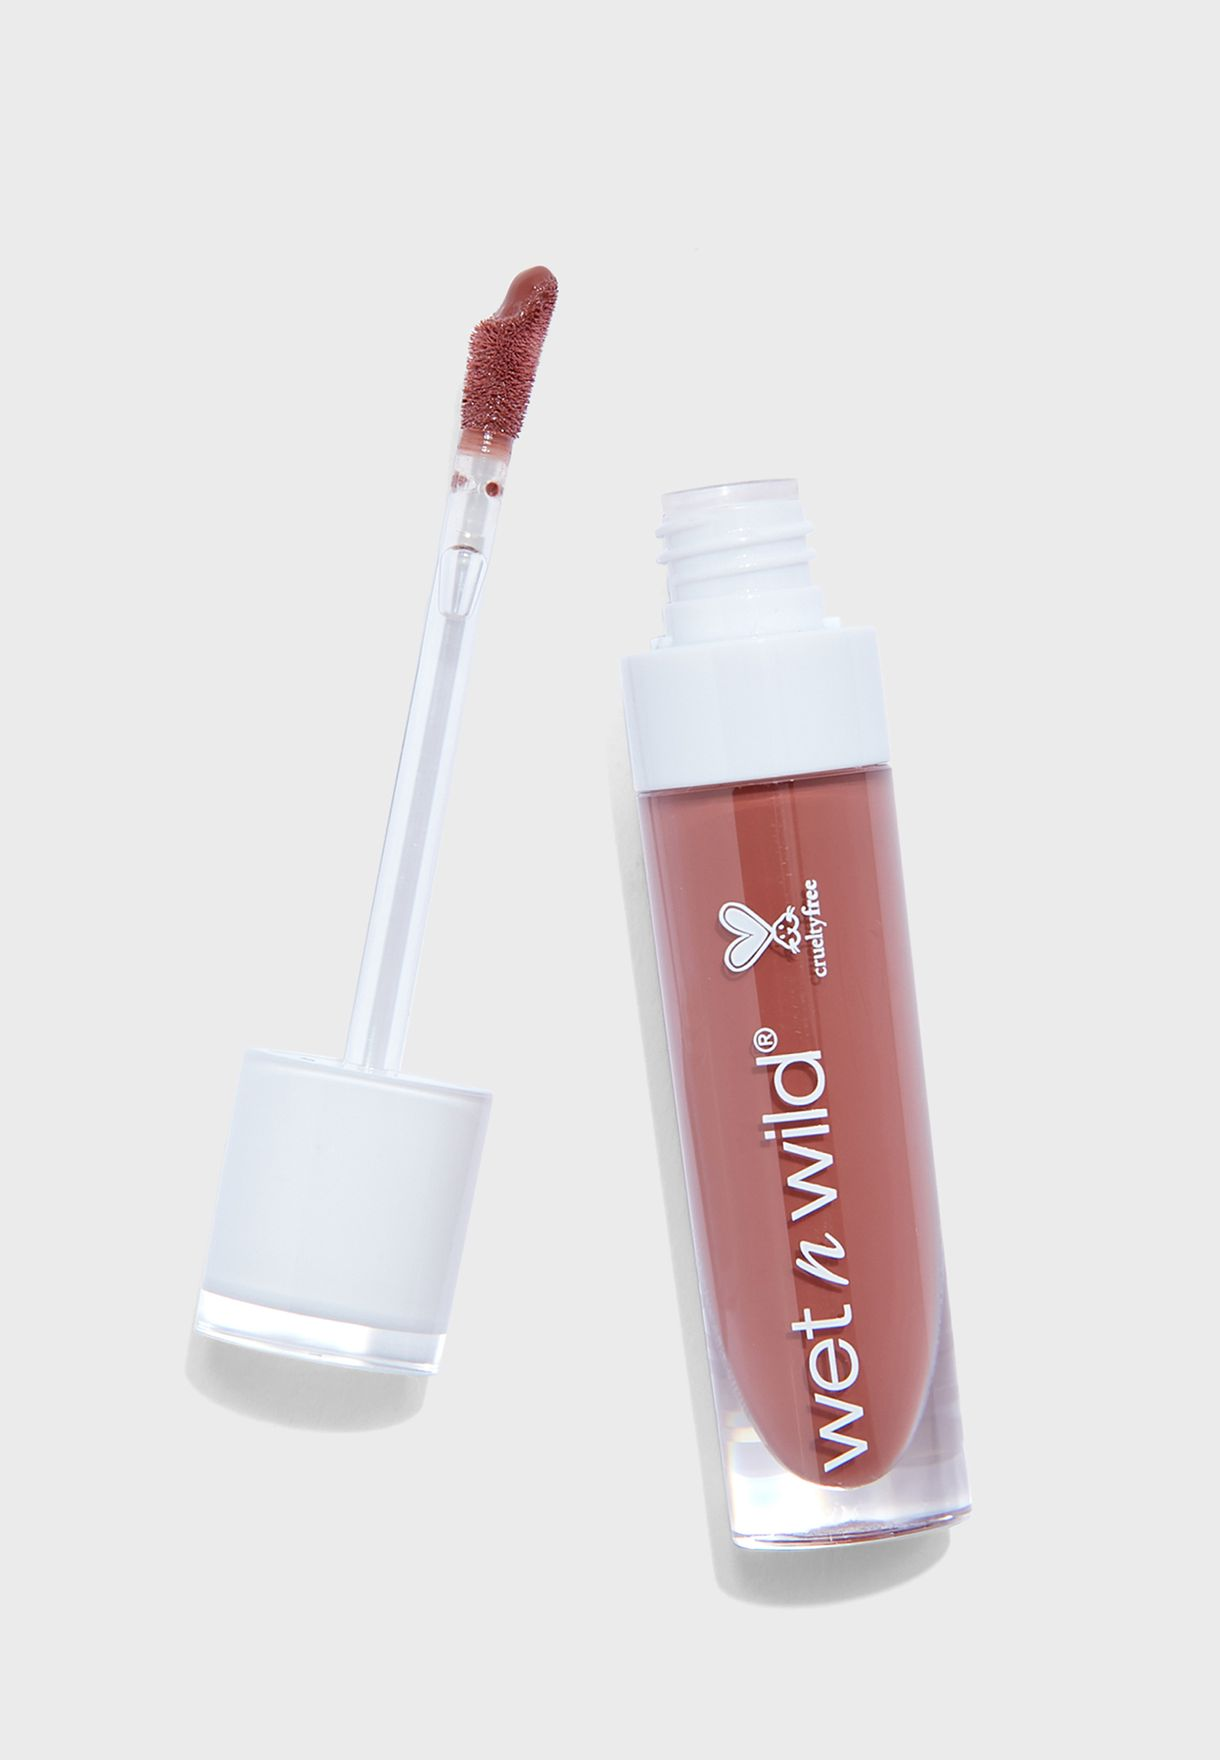 Megalast Hi-Shine Liquid Lipstick Cedar Later